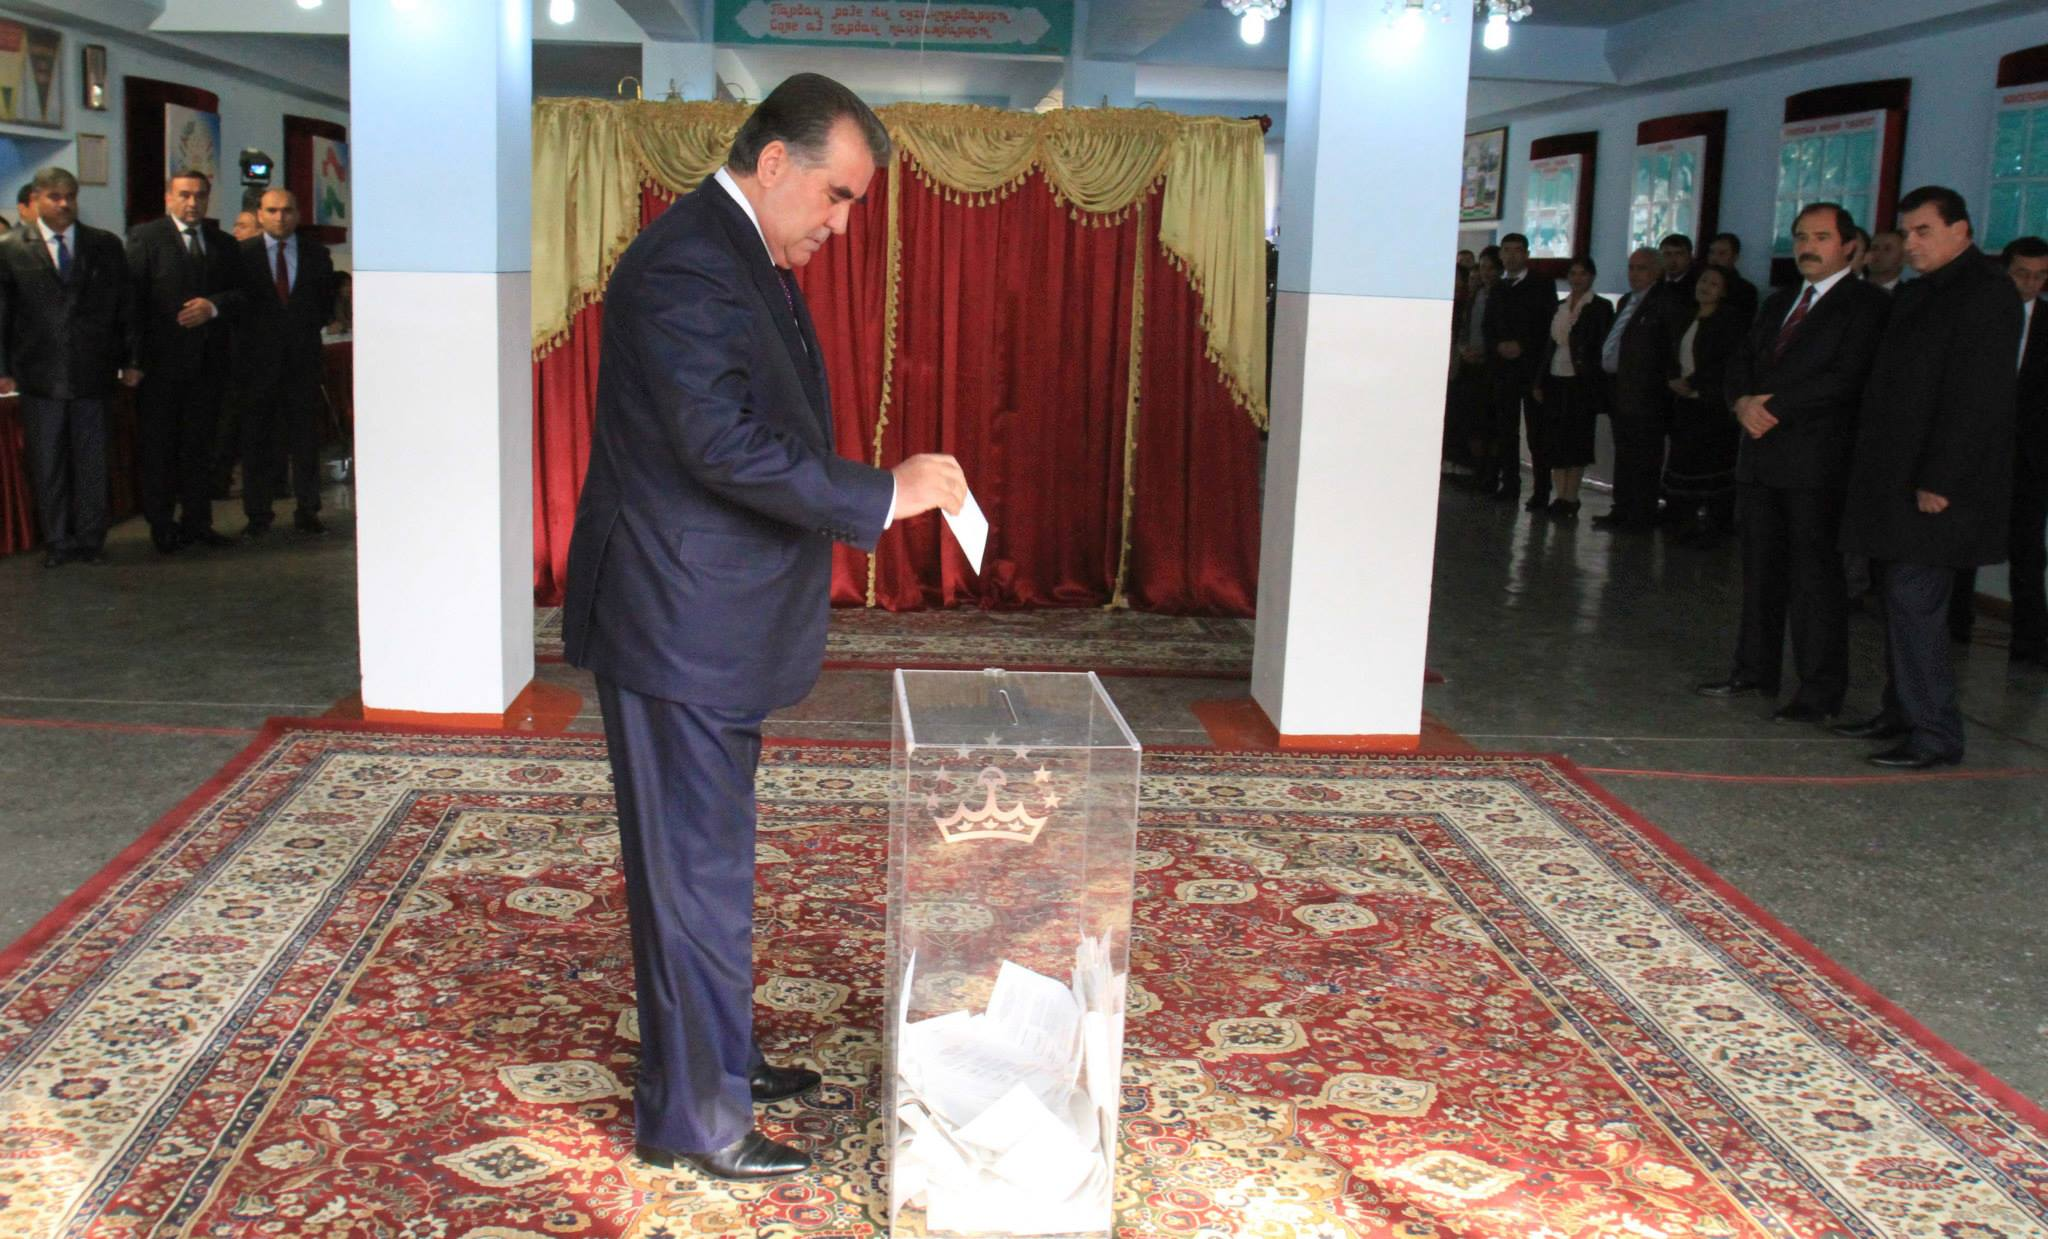 President Emomali Rahmon casting his vote today. Photo by president's press service, part of public domain.